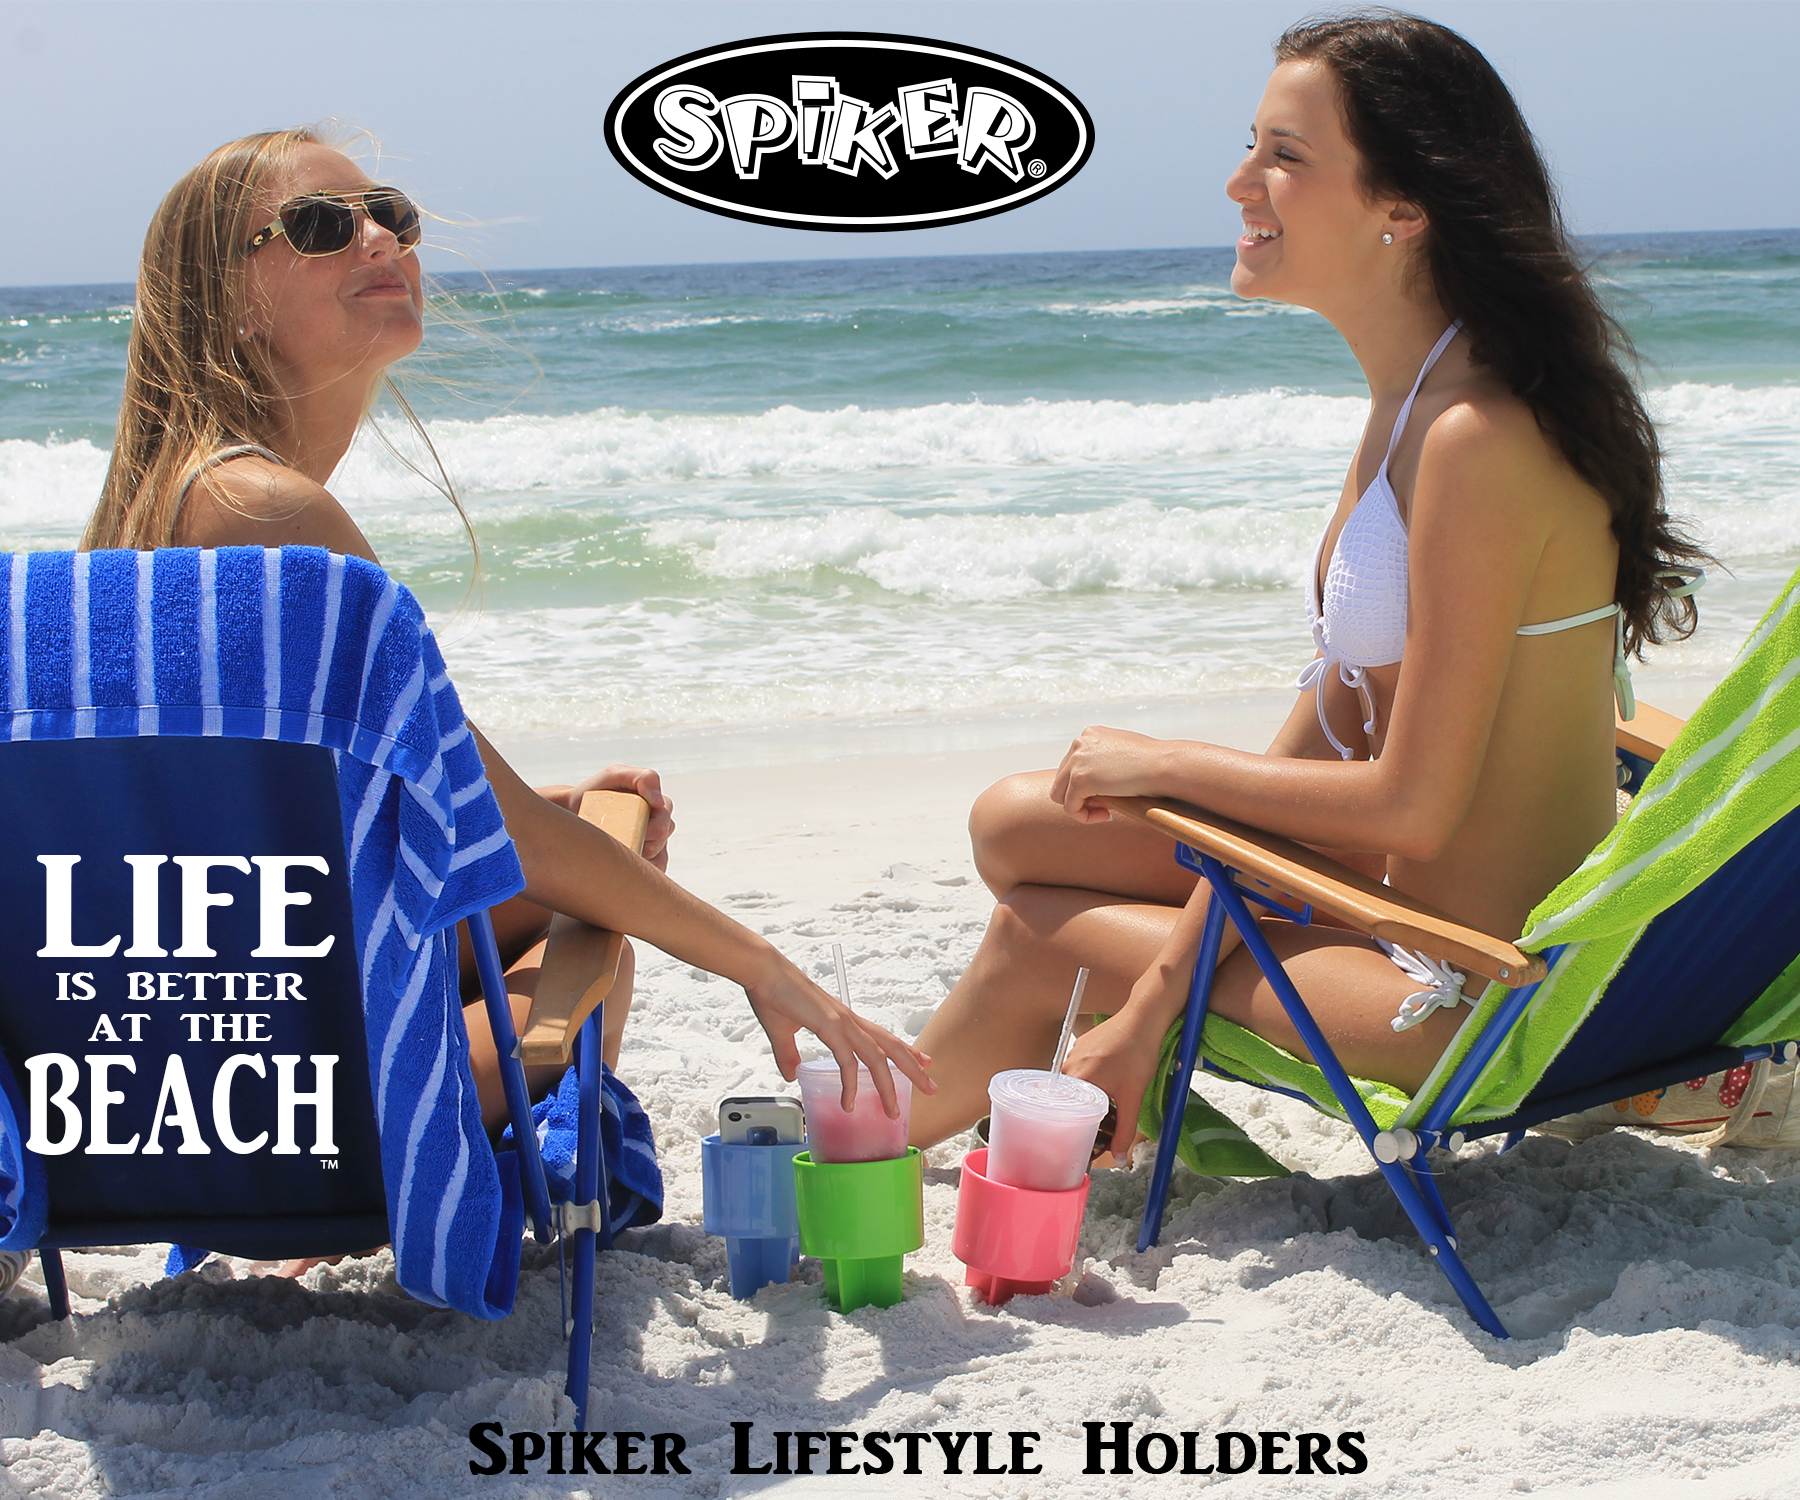 Spikeer Lifestyle Holder, Spike It!